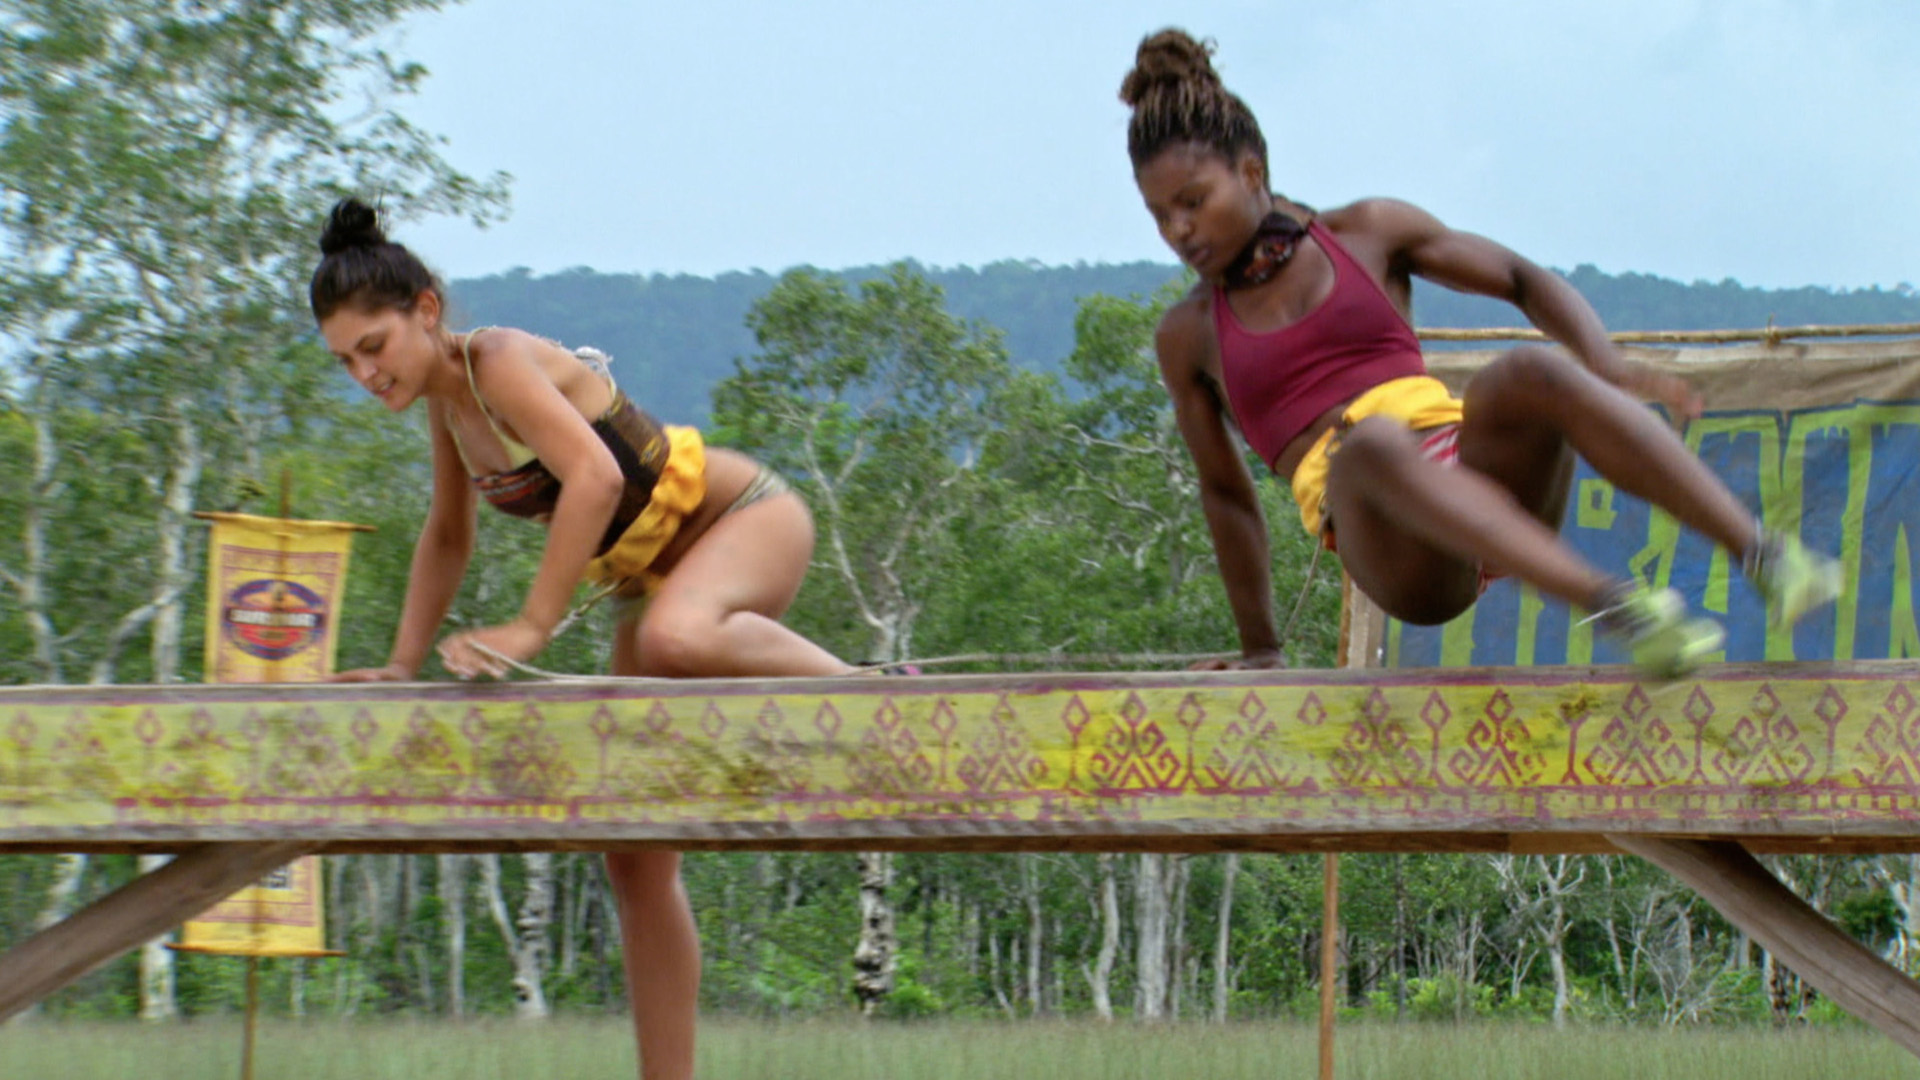 Michele and Cydney take on the Reward Challenge tethered together.